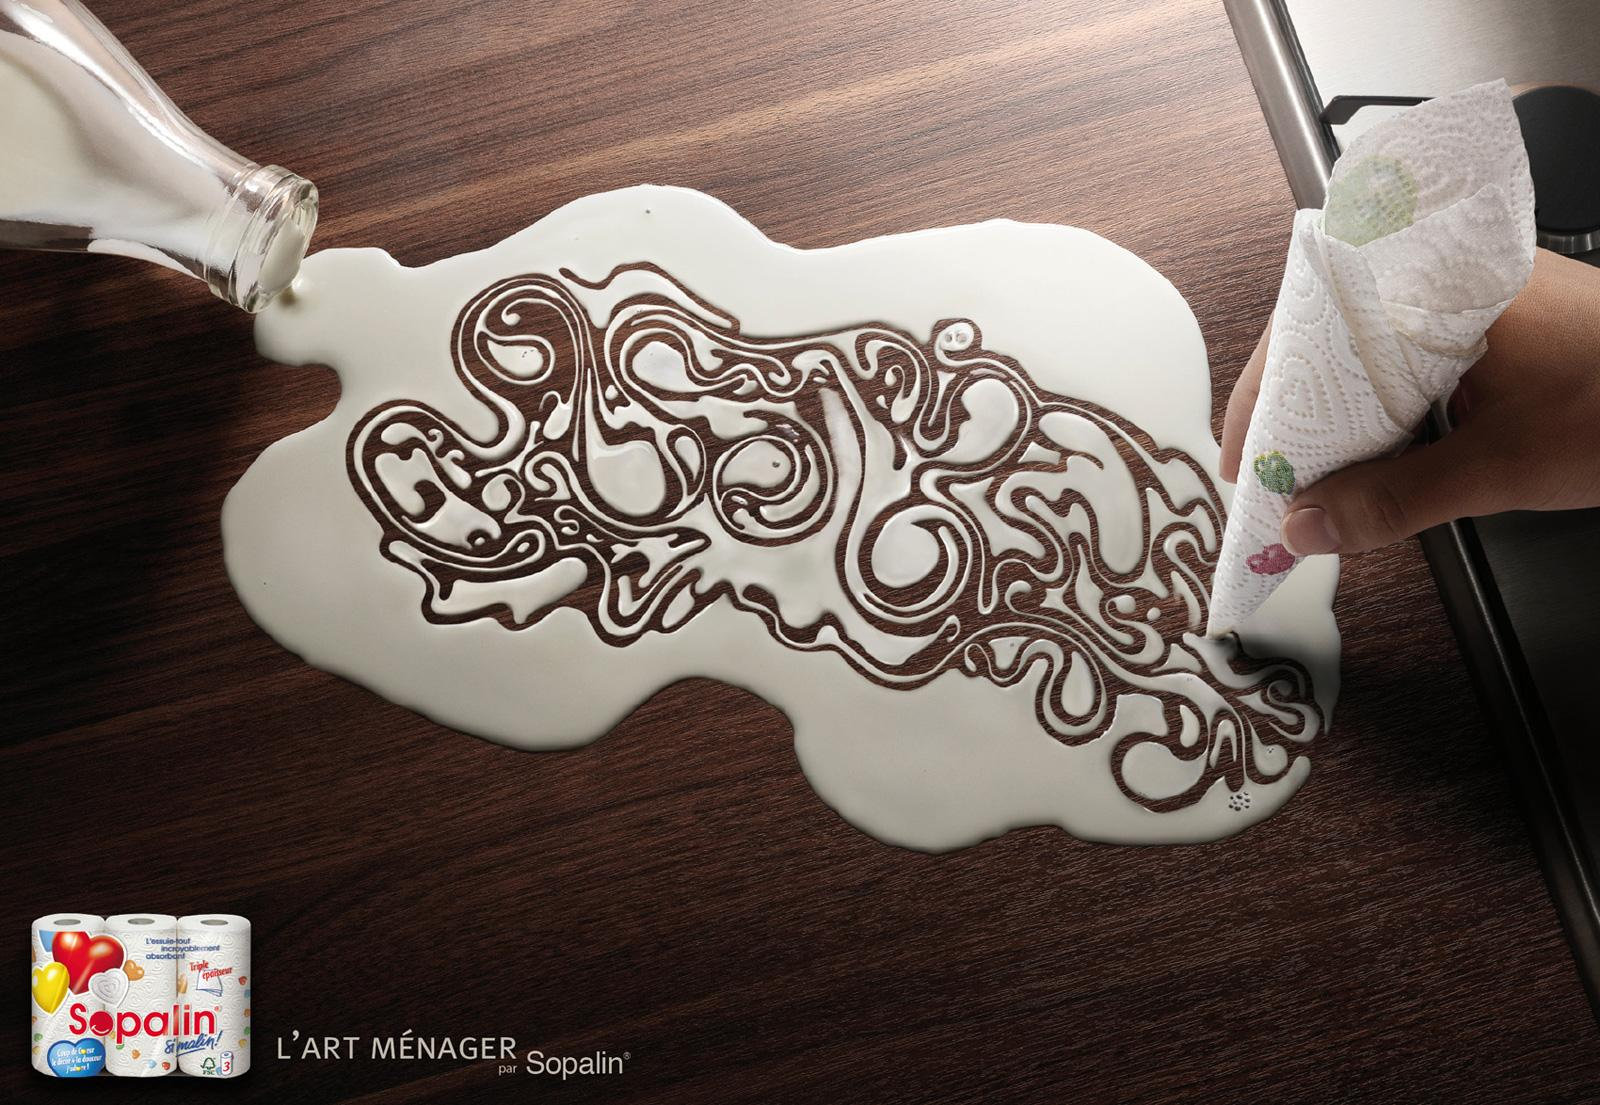 Sopalin Print Ad -  The art of cleaning, 2